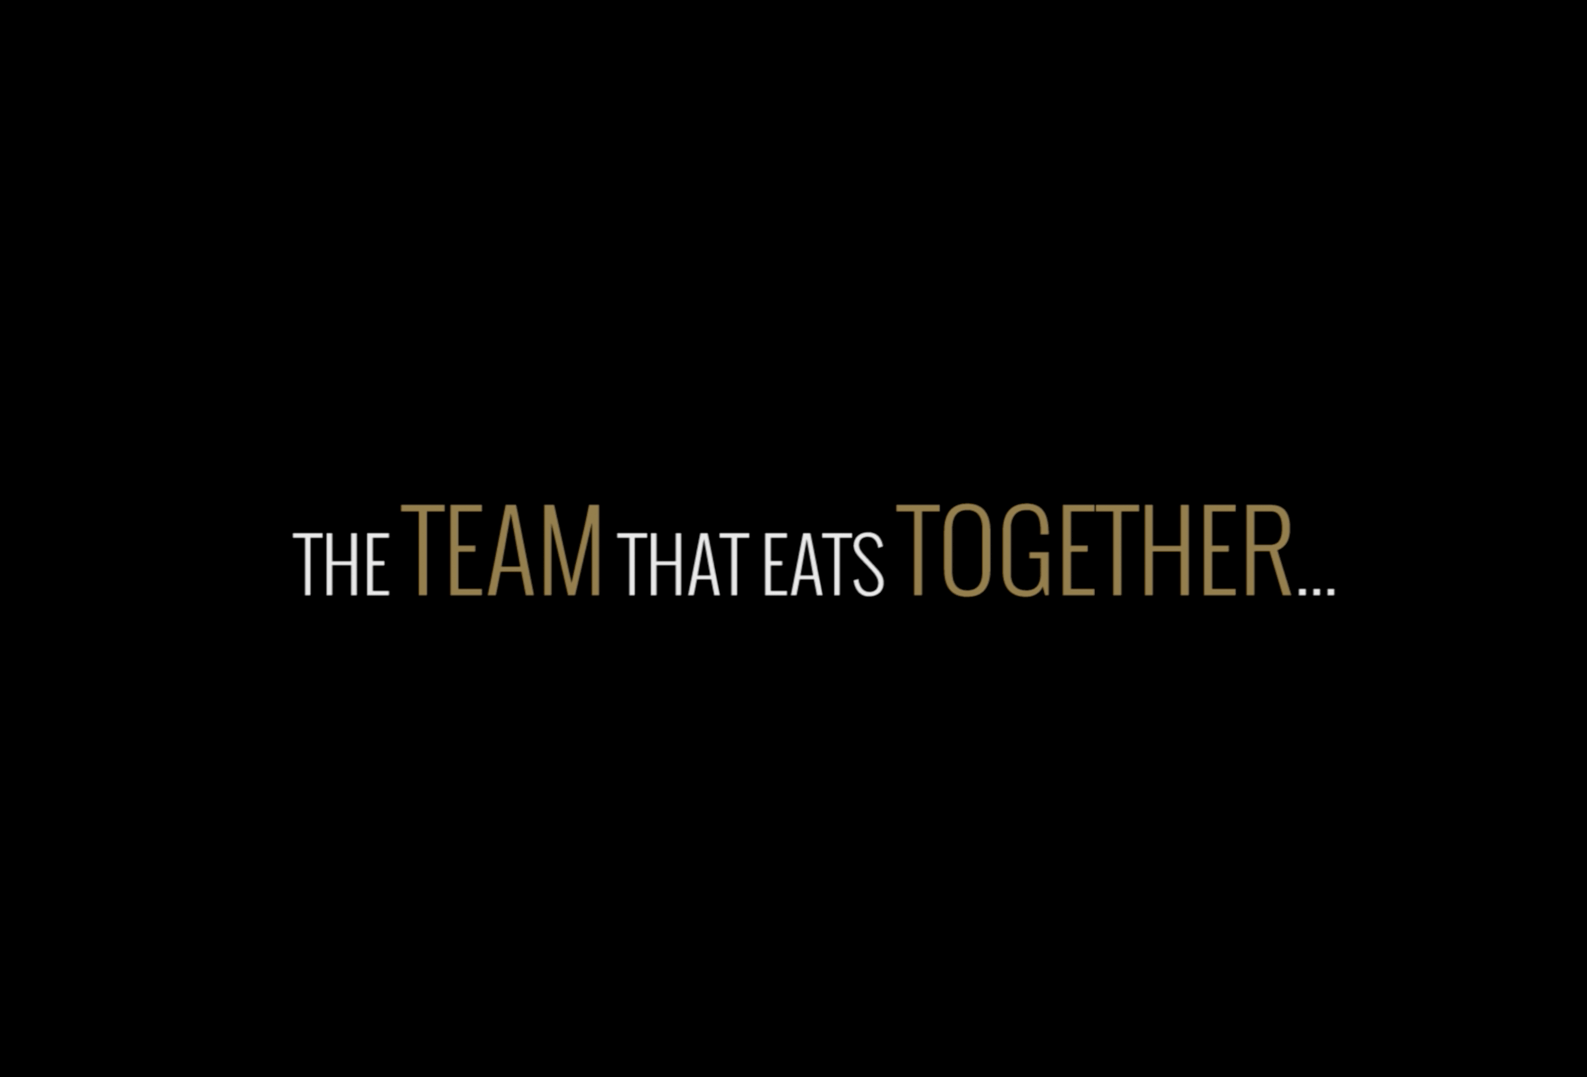 The Team That Eats Together